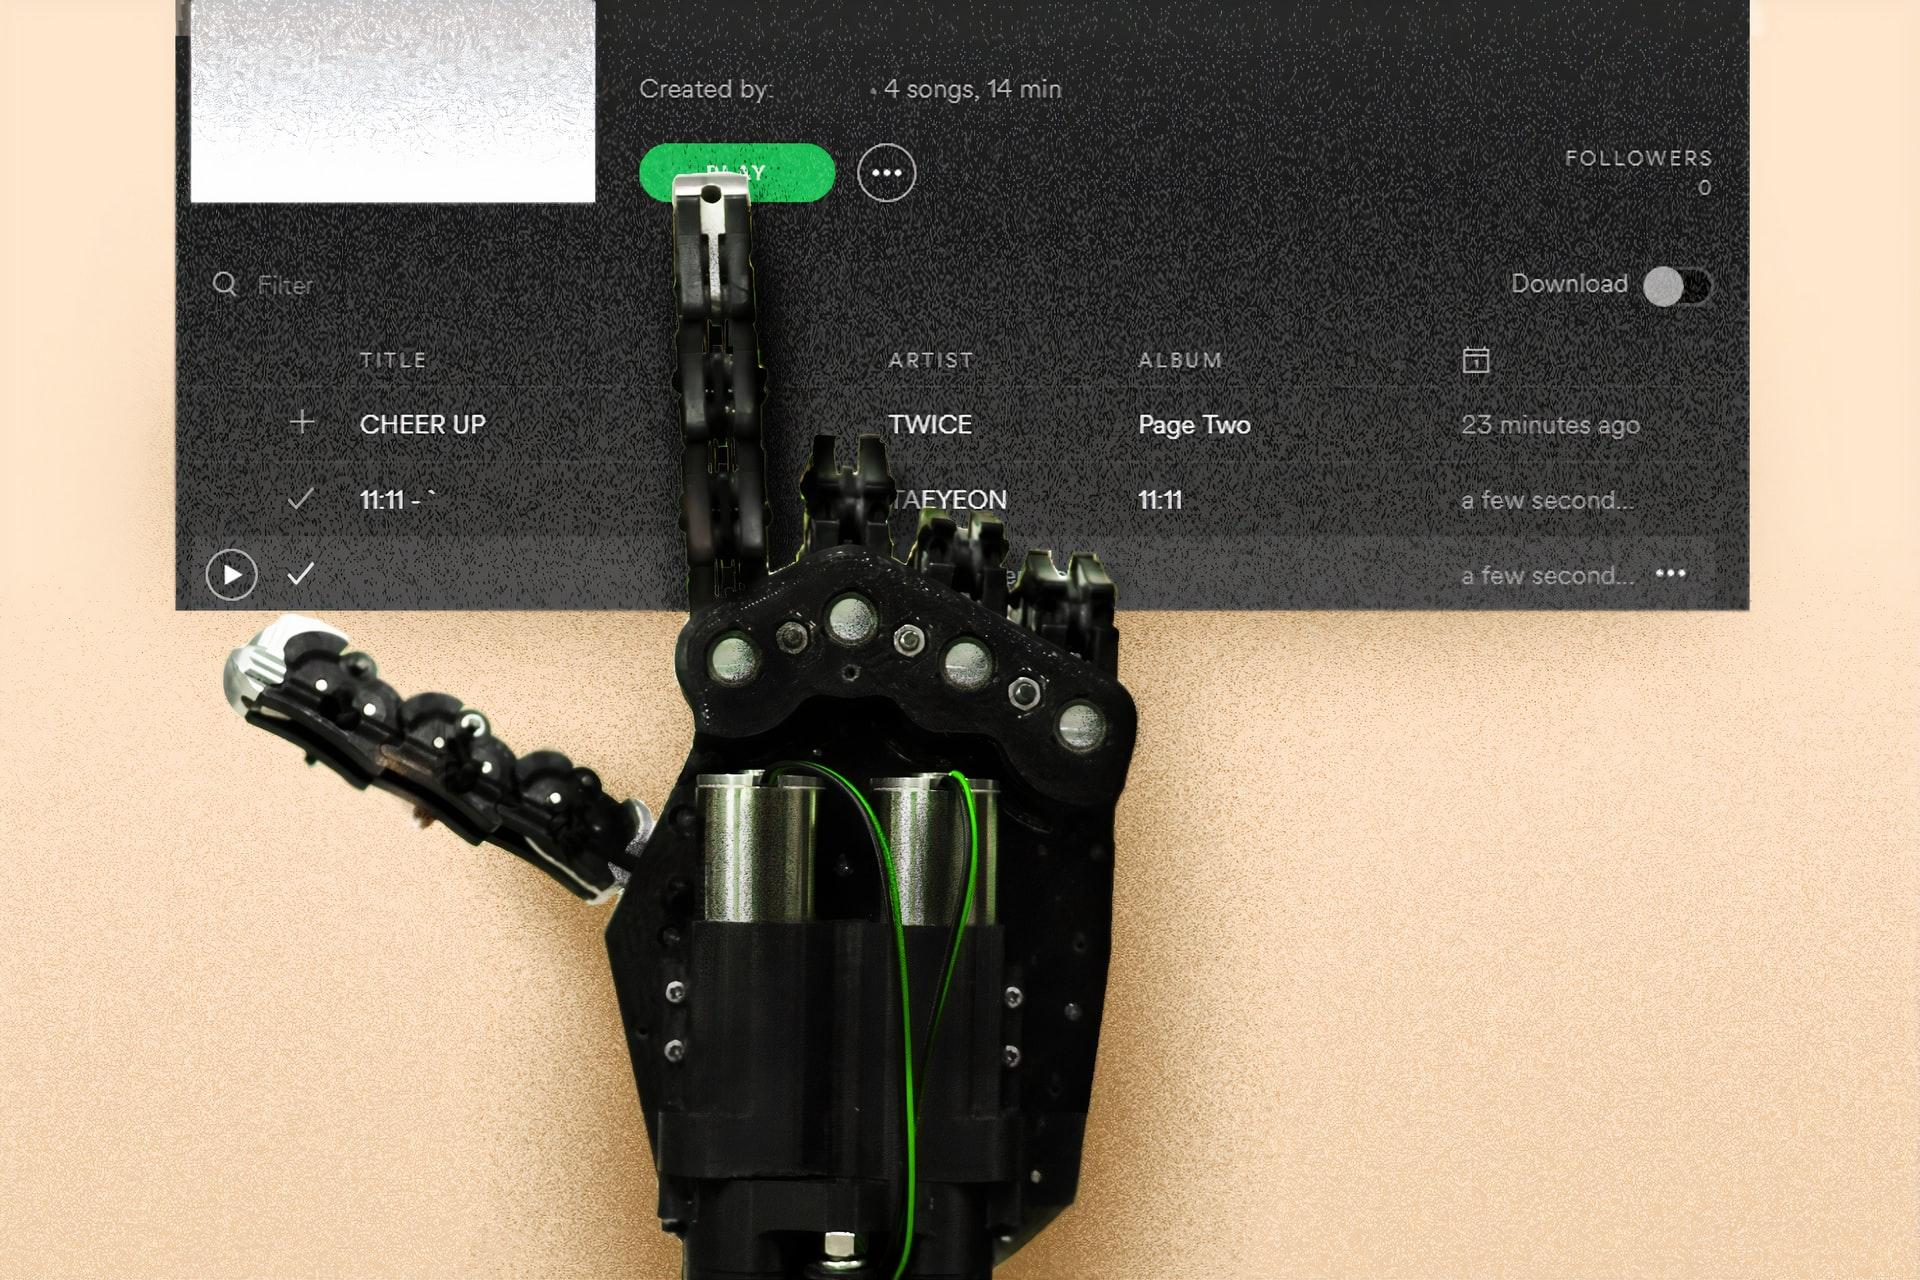 spotify single page applications, with robotized hand